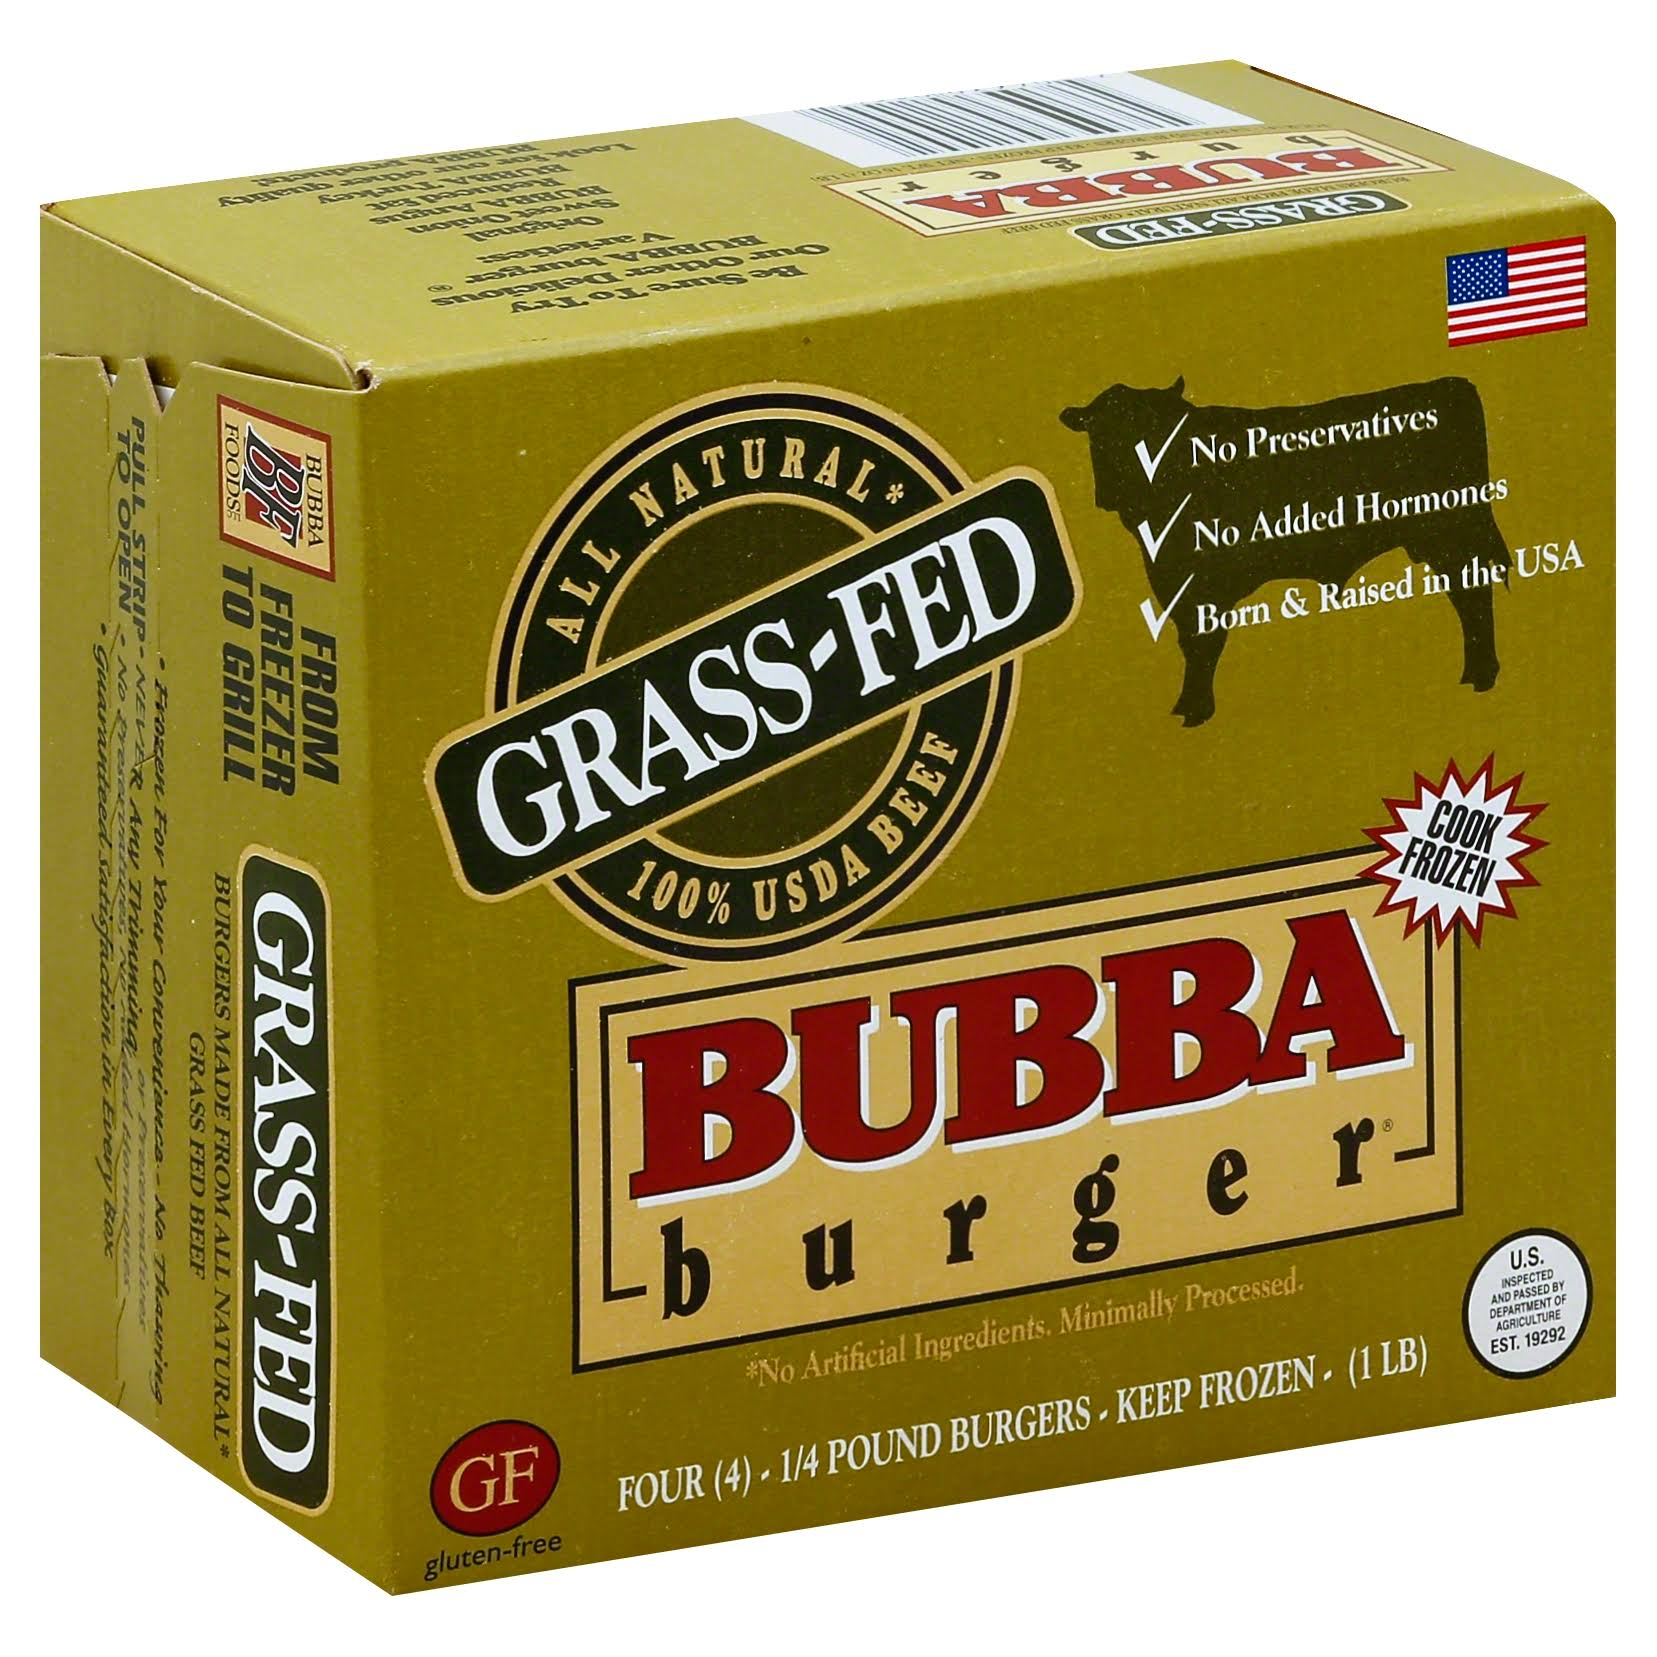 Bubba Burger, Grass-Fed Beef - 4 pack, 0.25 lb burgers